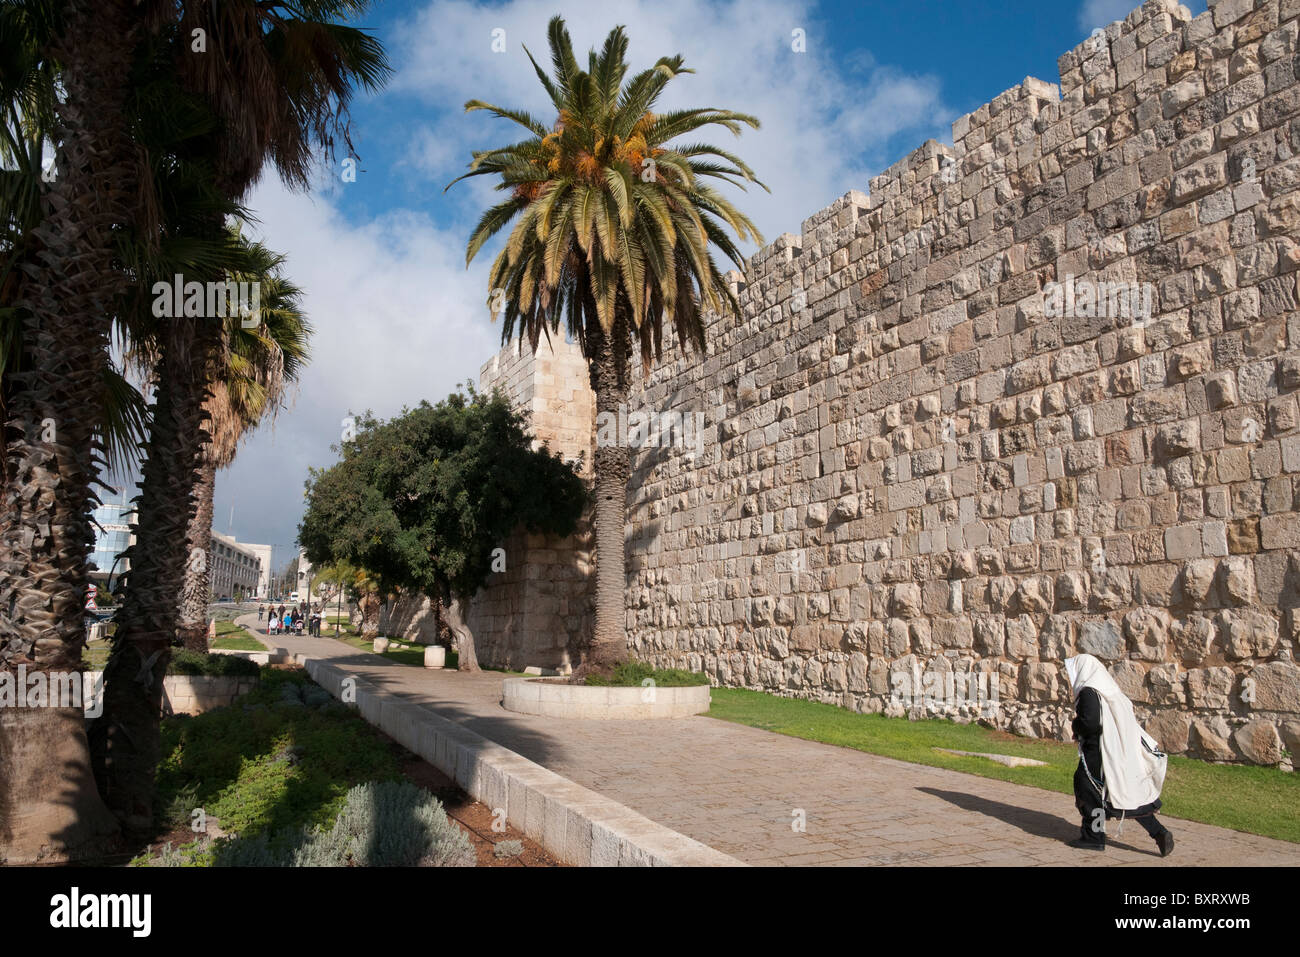 Orthodox jew walking along the City walls with palm trees shadow. jerusalem Old City - Stock Image